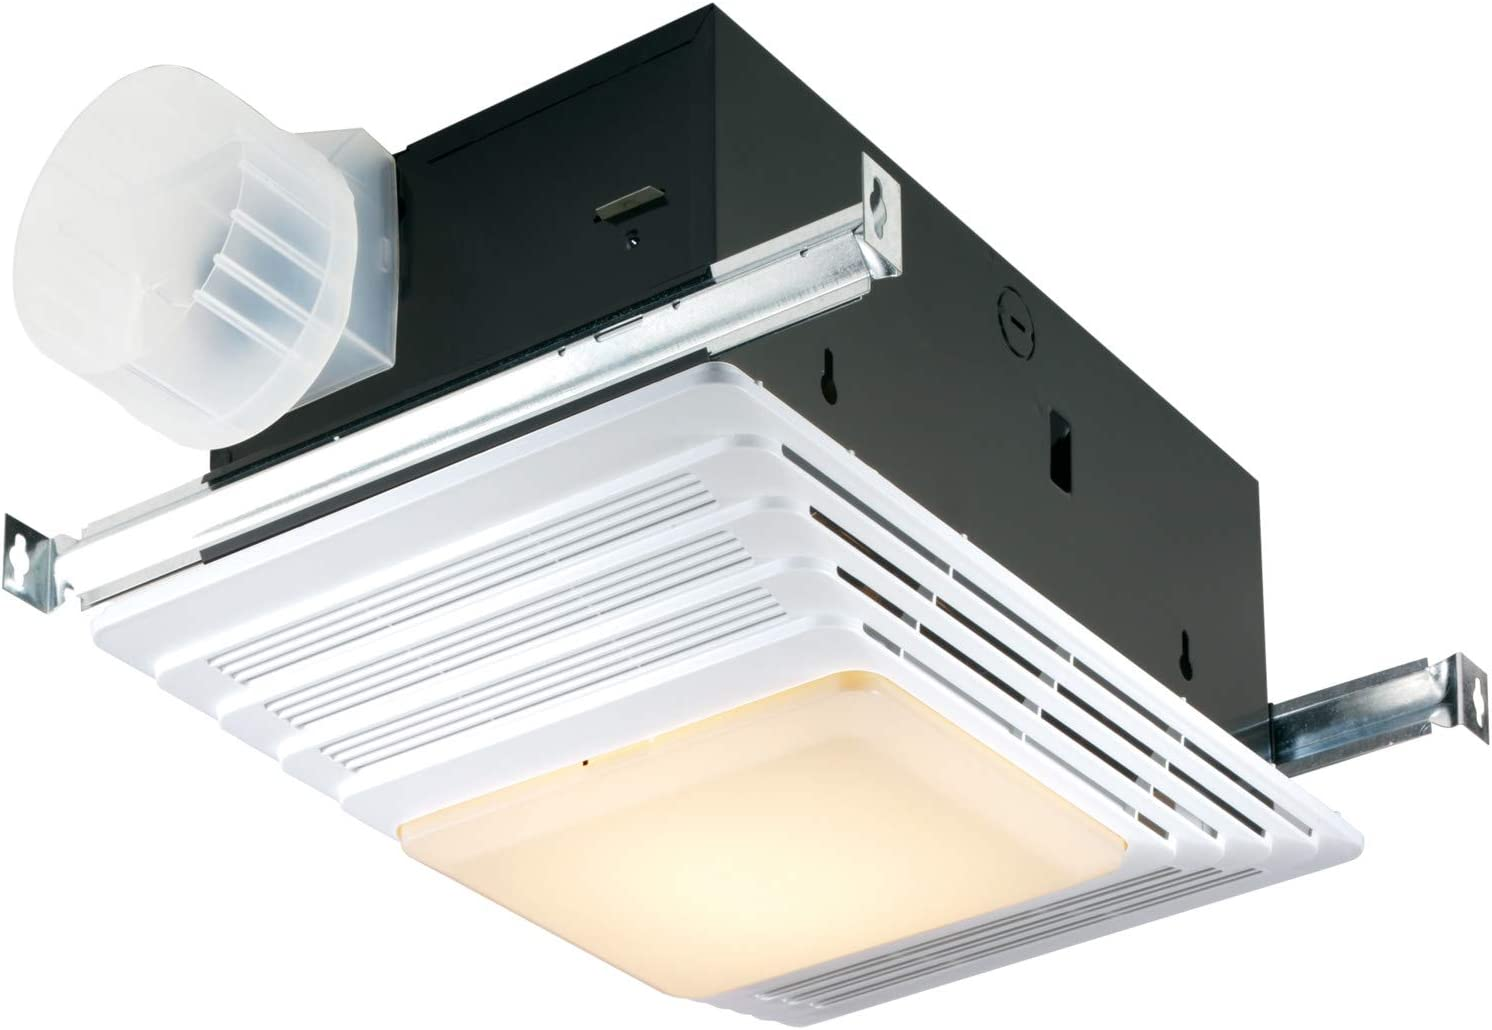 Broan-NuTone 765H80LB Bathroom Exhaust Heater and Light, 80 CFM, 2.0 Sones Bath Fan, White